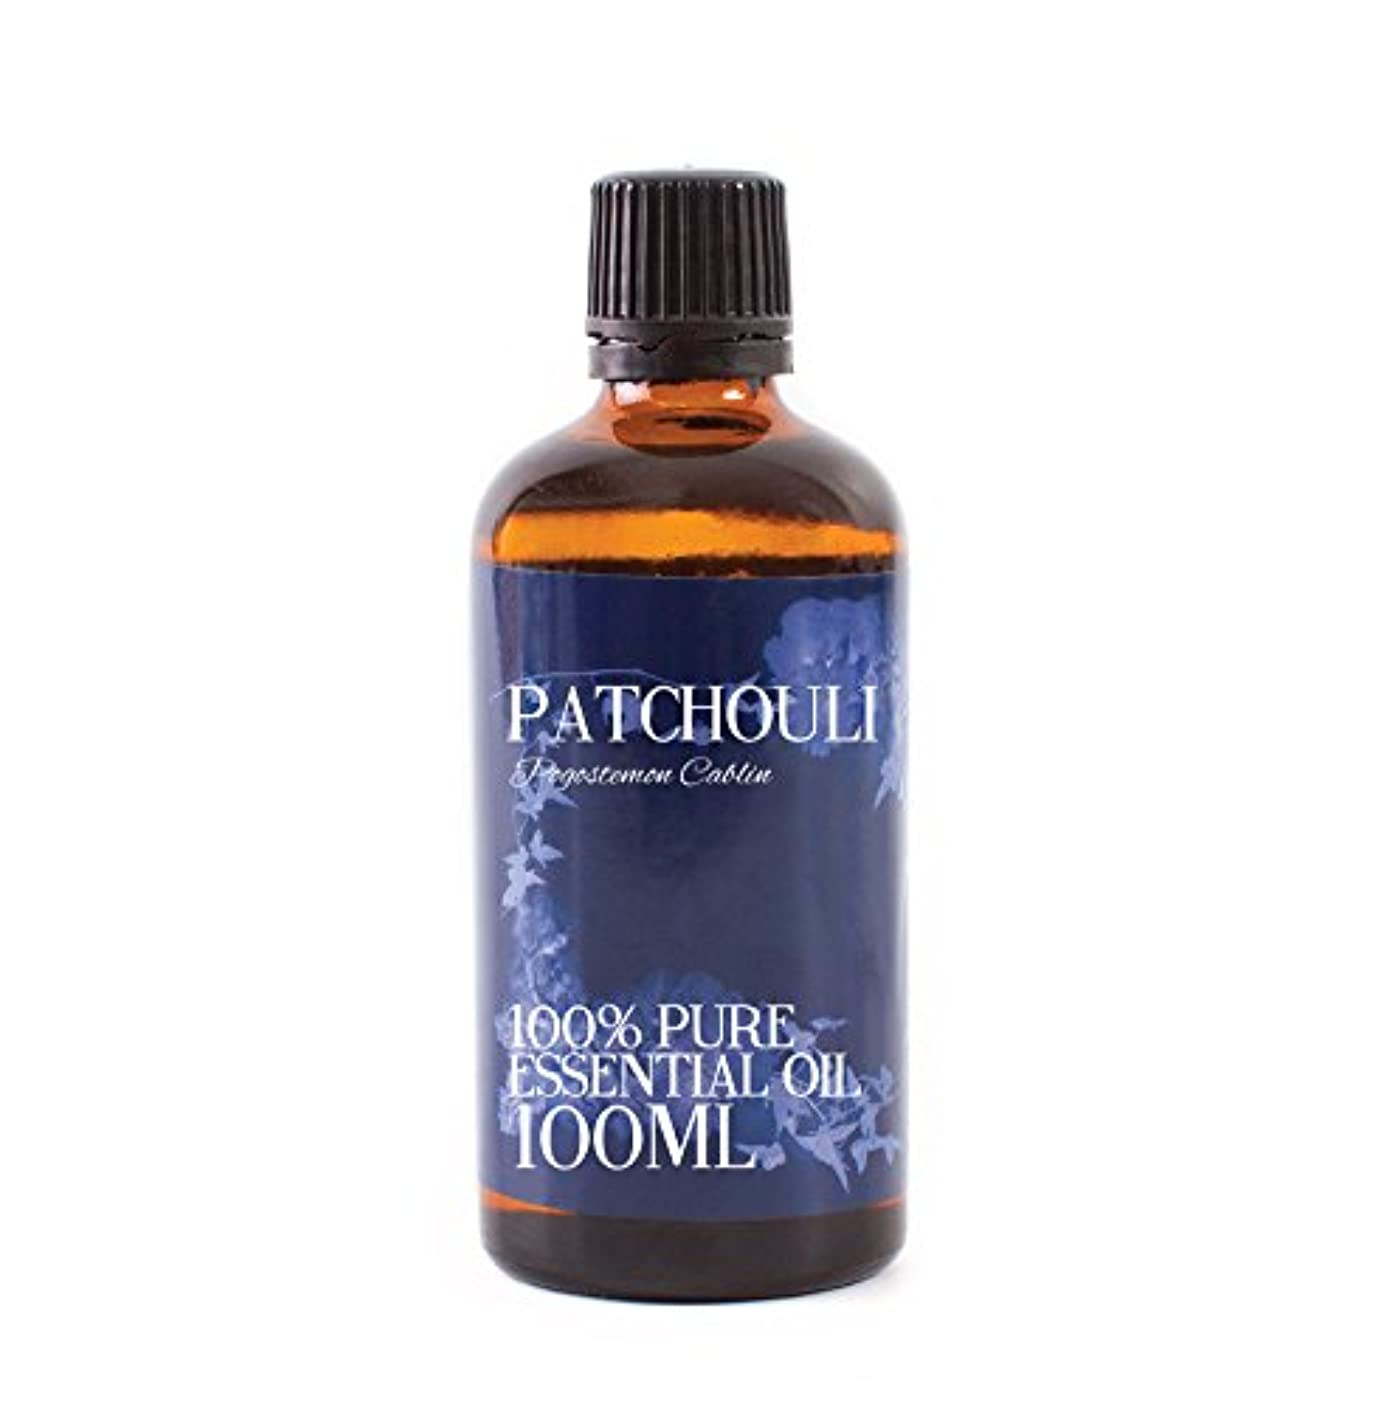 作物起業家ピンポイントMystic Moments | Patchouli Essential Oil - 100ml - 100% Pure